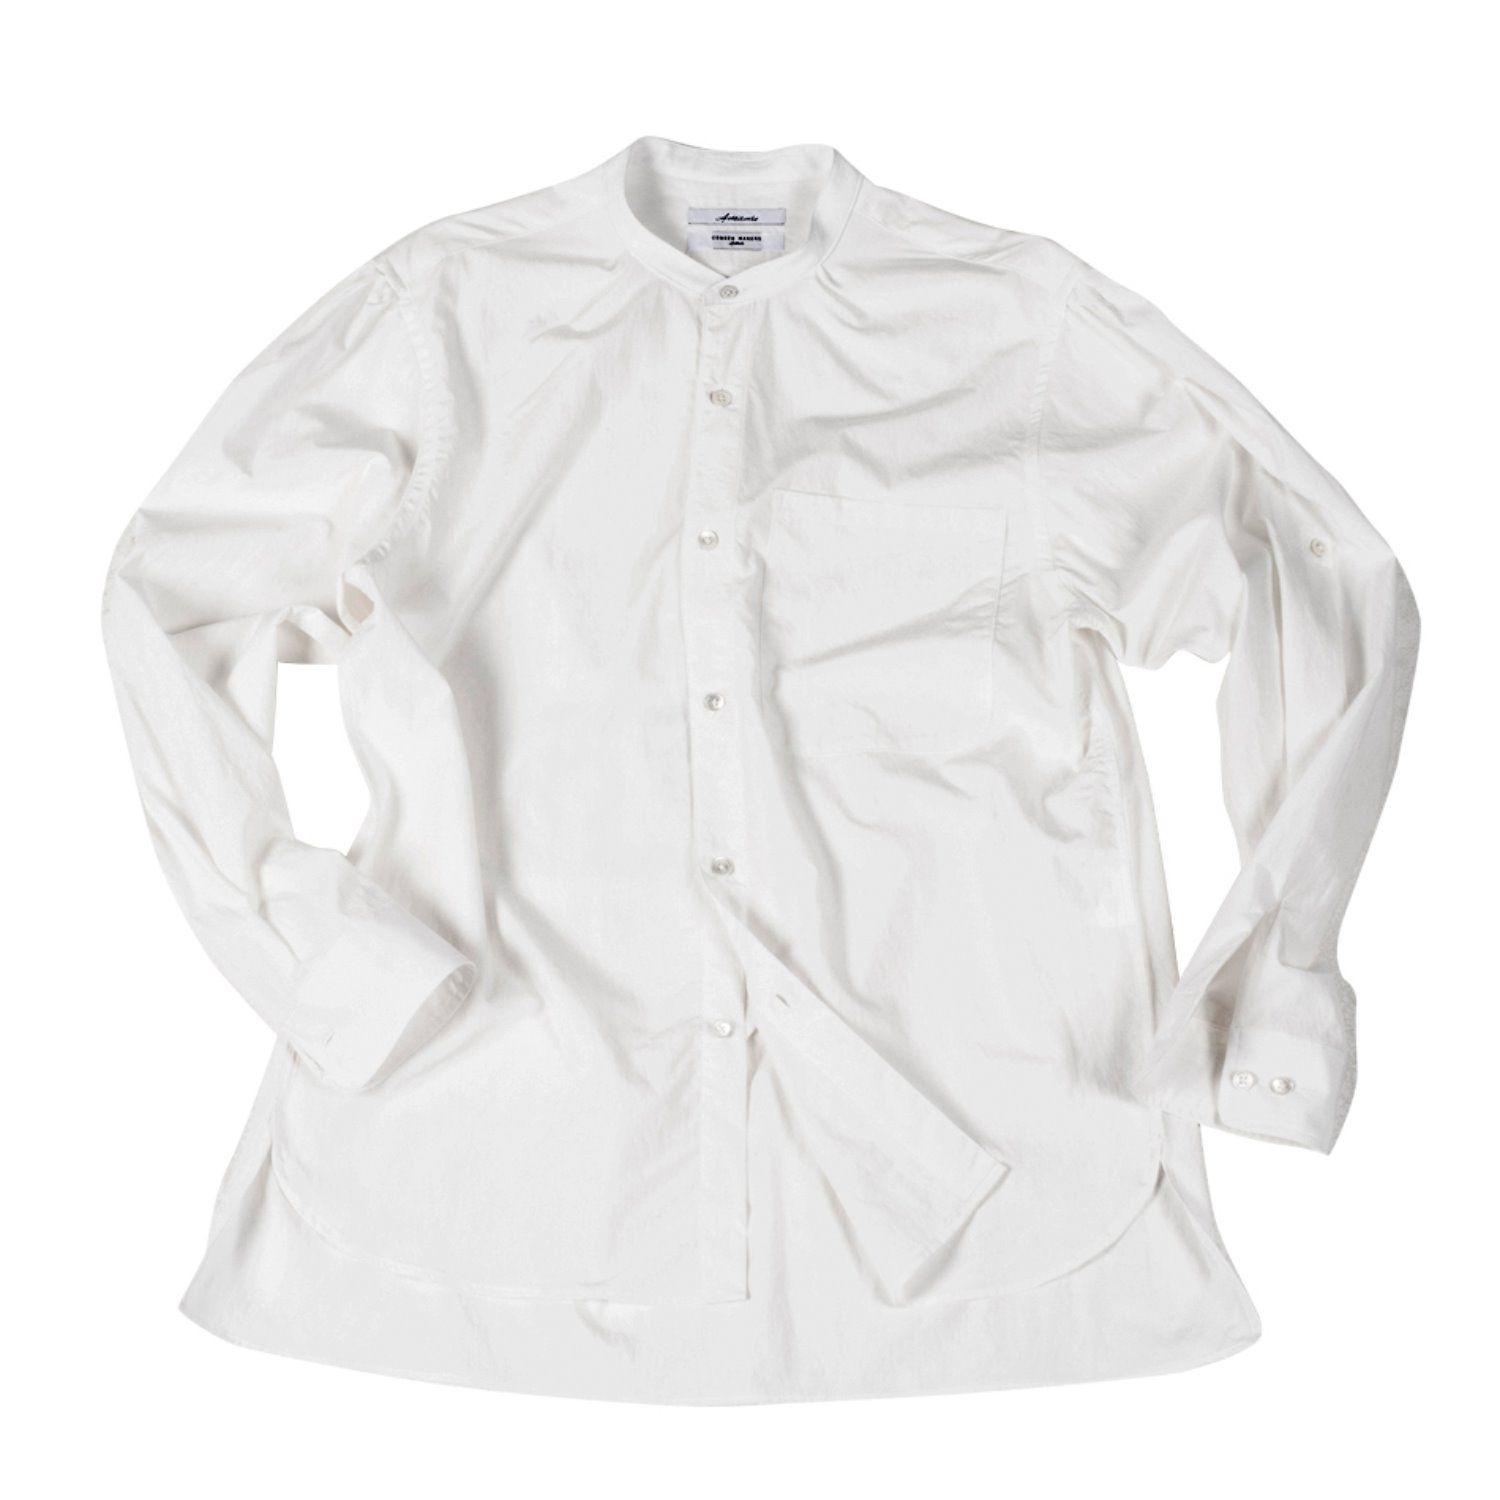 Corozo Makers Pin Band Collar Shirts (off white)